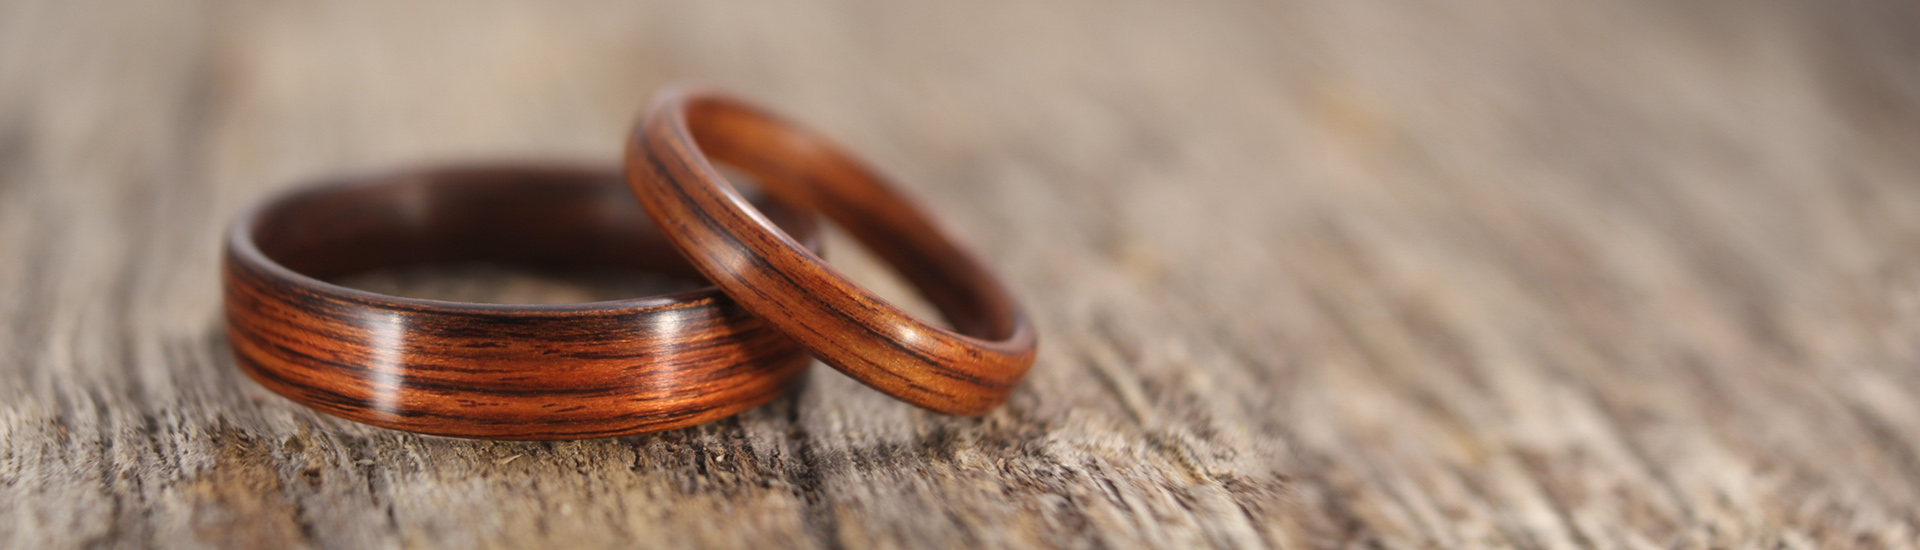 main-page-kingwood-bentwood-ring-pair2